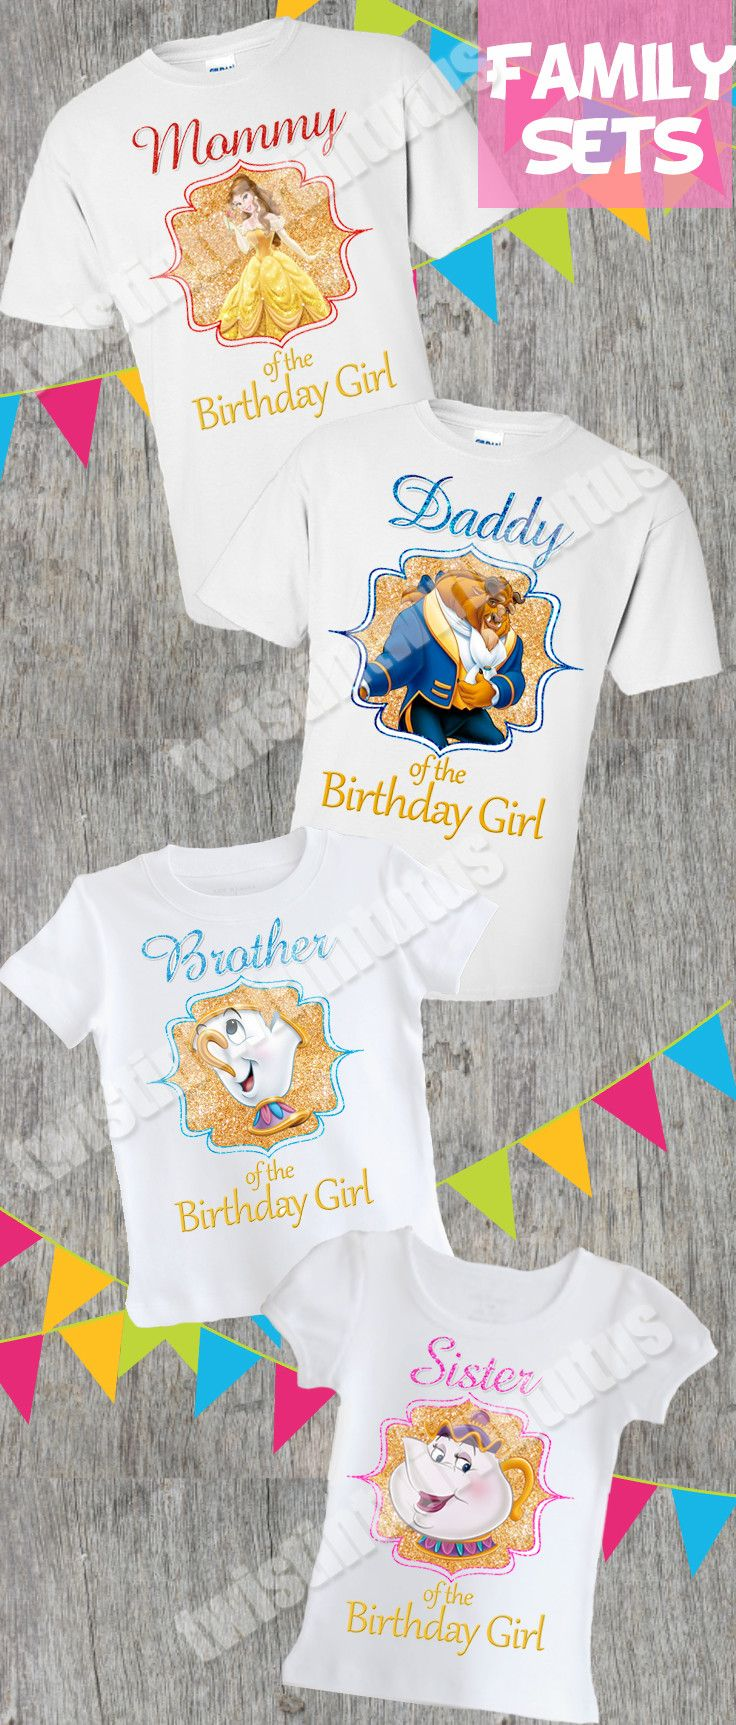 Beauty and the Beast Family Shirts   Beauty and the Beast Birthday Shirt   Beauty and the Beast Birthday Party   Beauty and the Beast Party   Princess Belle Birthday Party   Belle Birthday Party   Birthday Ideas for Girls   Twistin Twirlin Tutus #beautyandthebeastbirthday